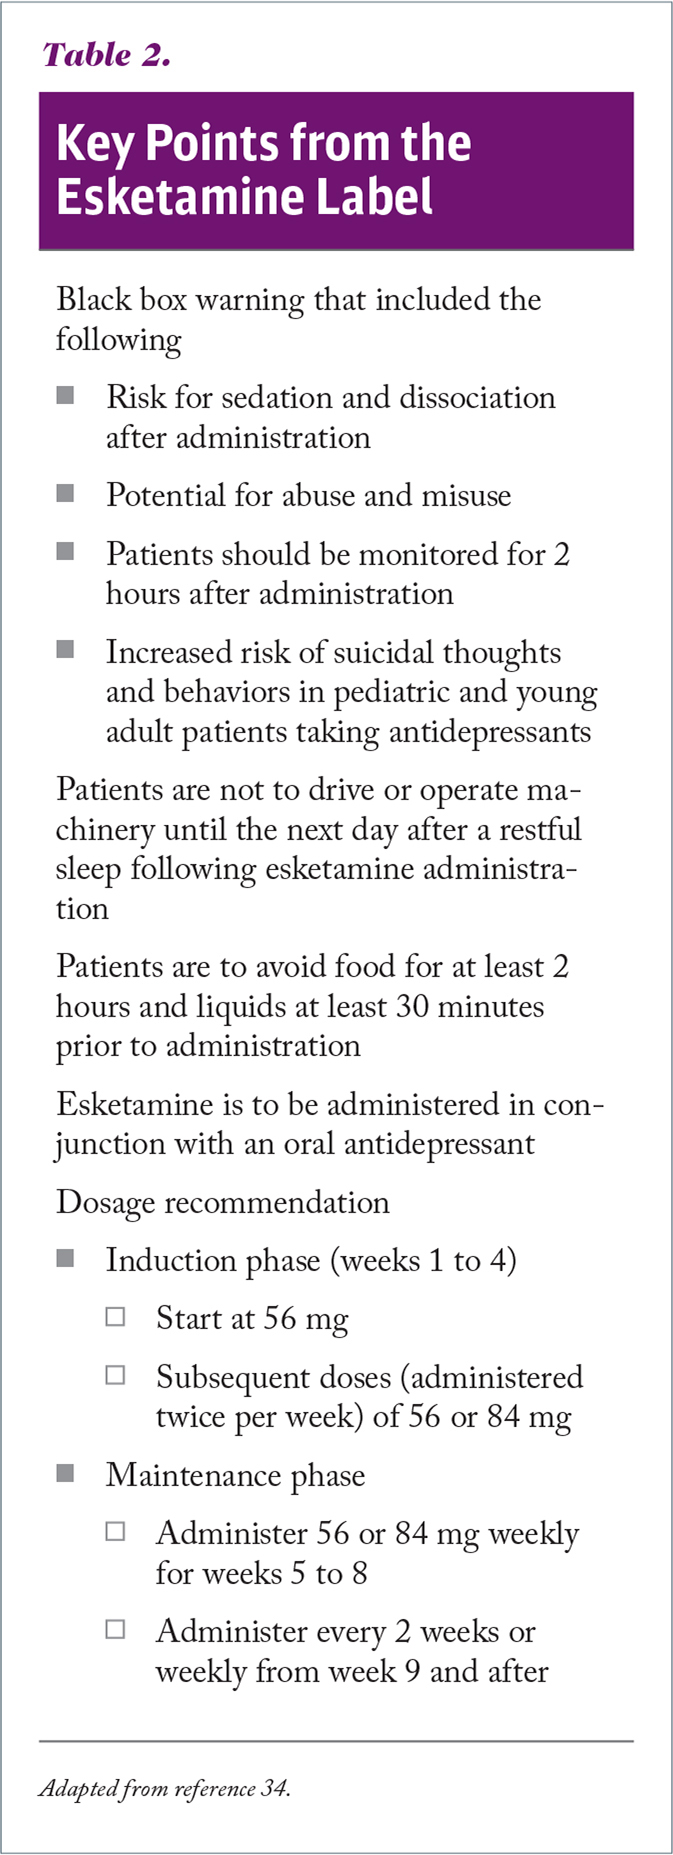 Key Points from the Esketamine Label